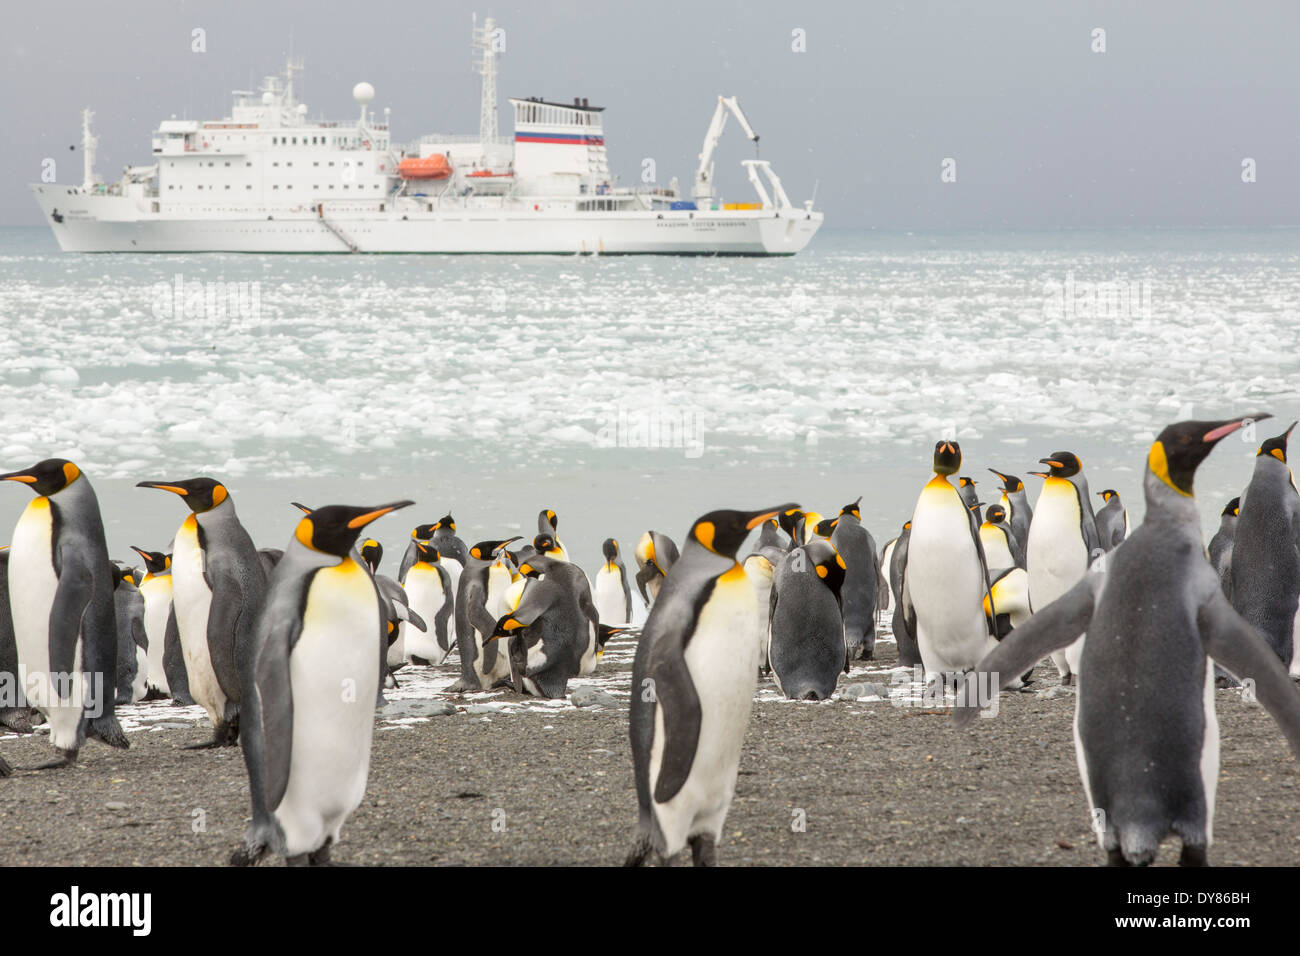 King Penguins on the beach at Gold Harbour on South Georgia, Southern Ocean with an expedition cruise ship behind. - Stock Image